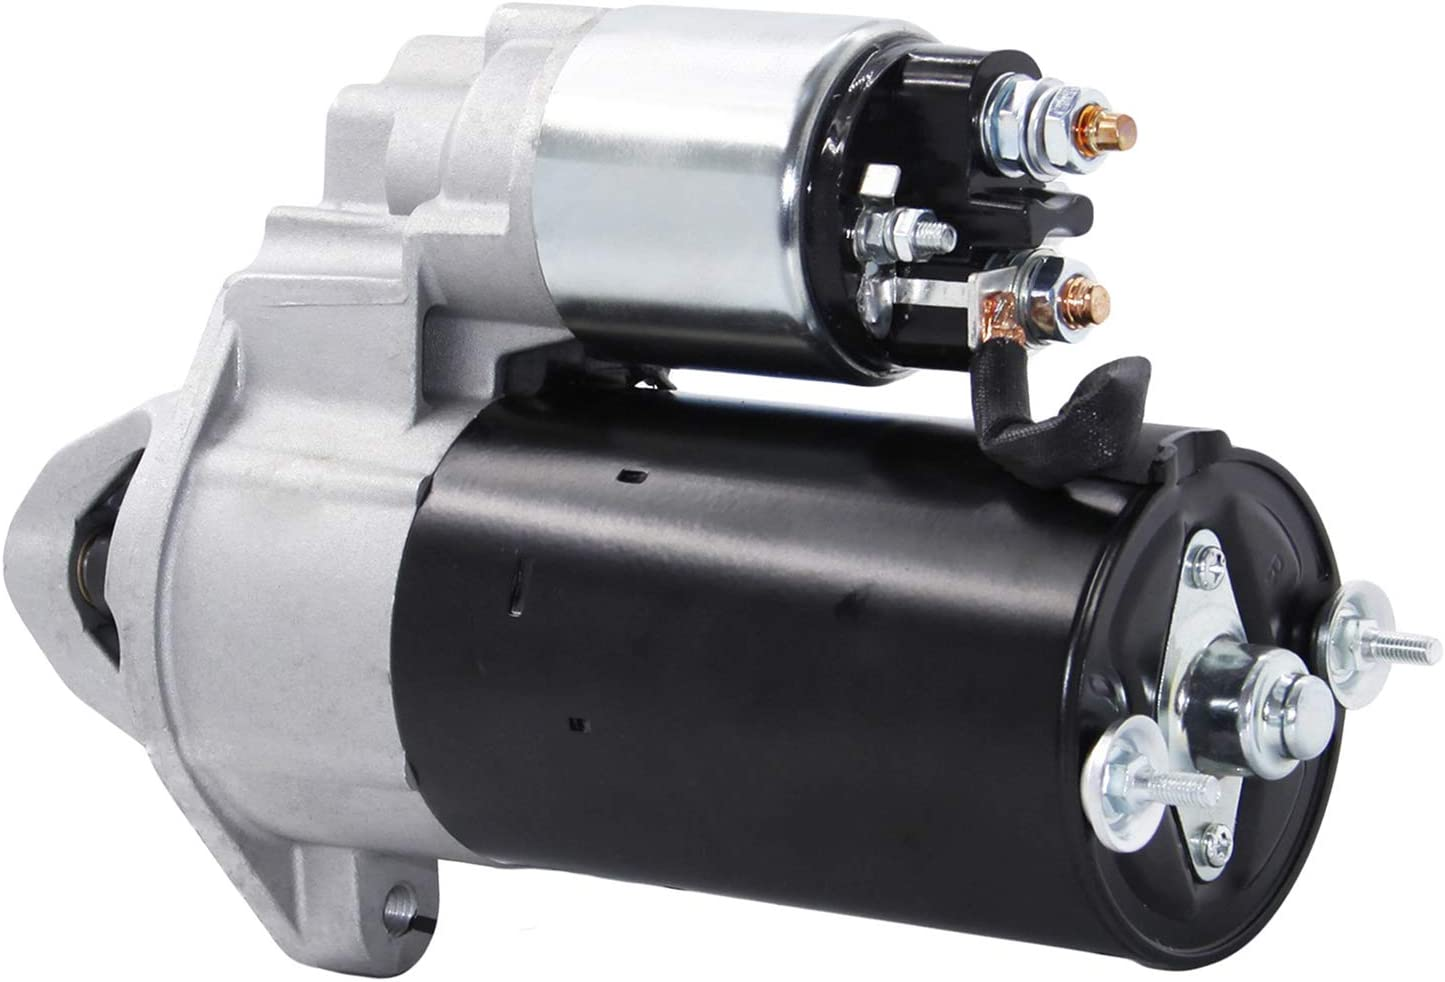 New Starter For 1992-2007 BMW Motorcycle 1241-2306001 D6RA55 D6RA75 432635 12-41-2-306-700